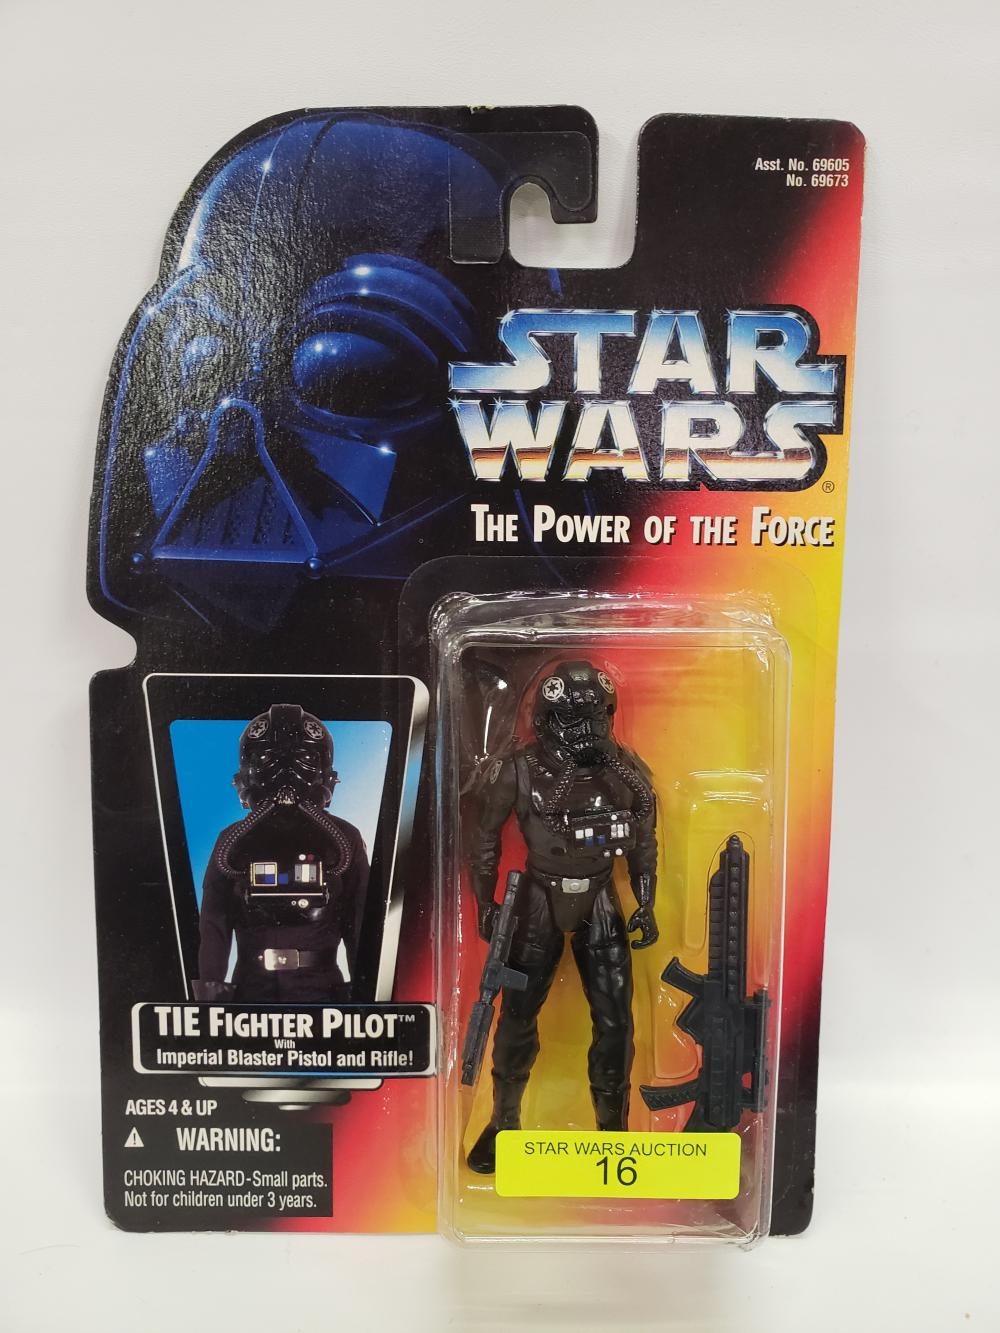 Kenner Star Wars The Power Of The Force Tie Fighter Pilot Action Figure for sale online